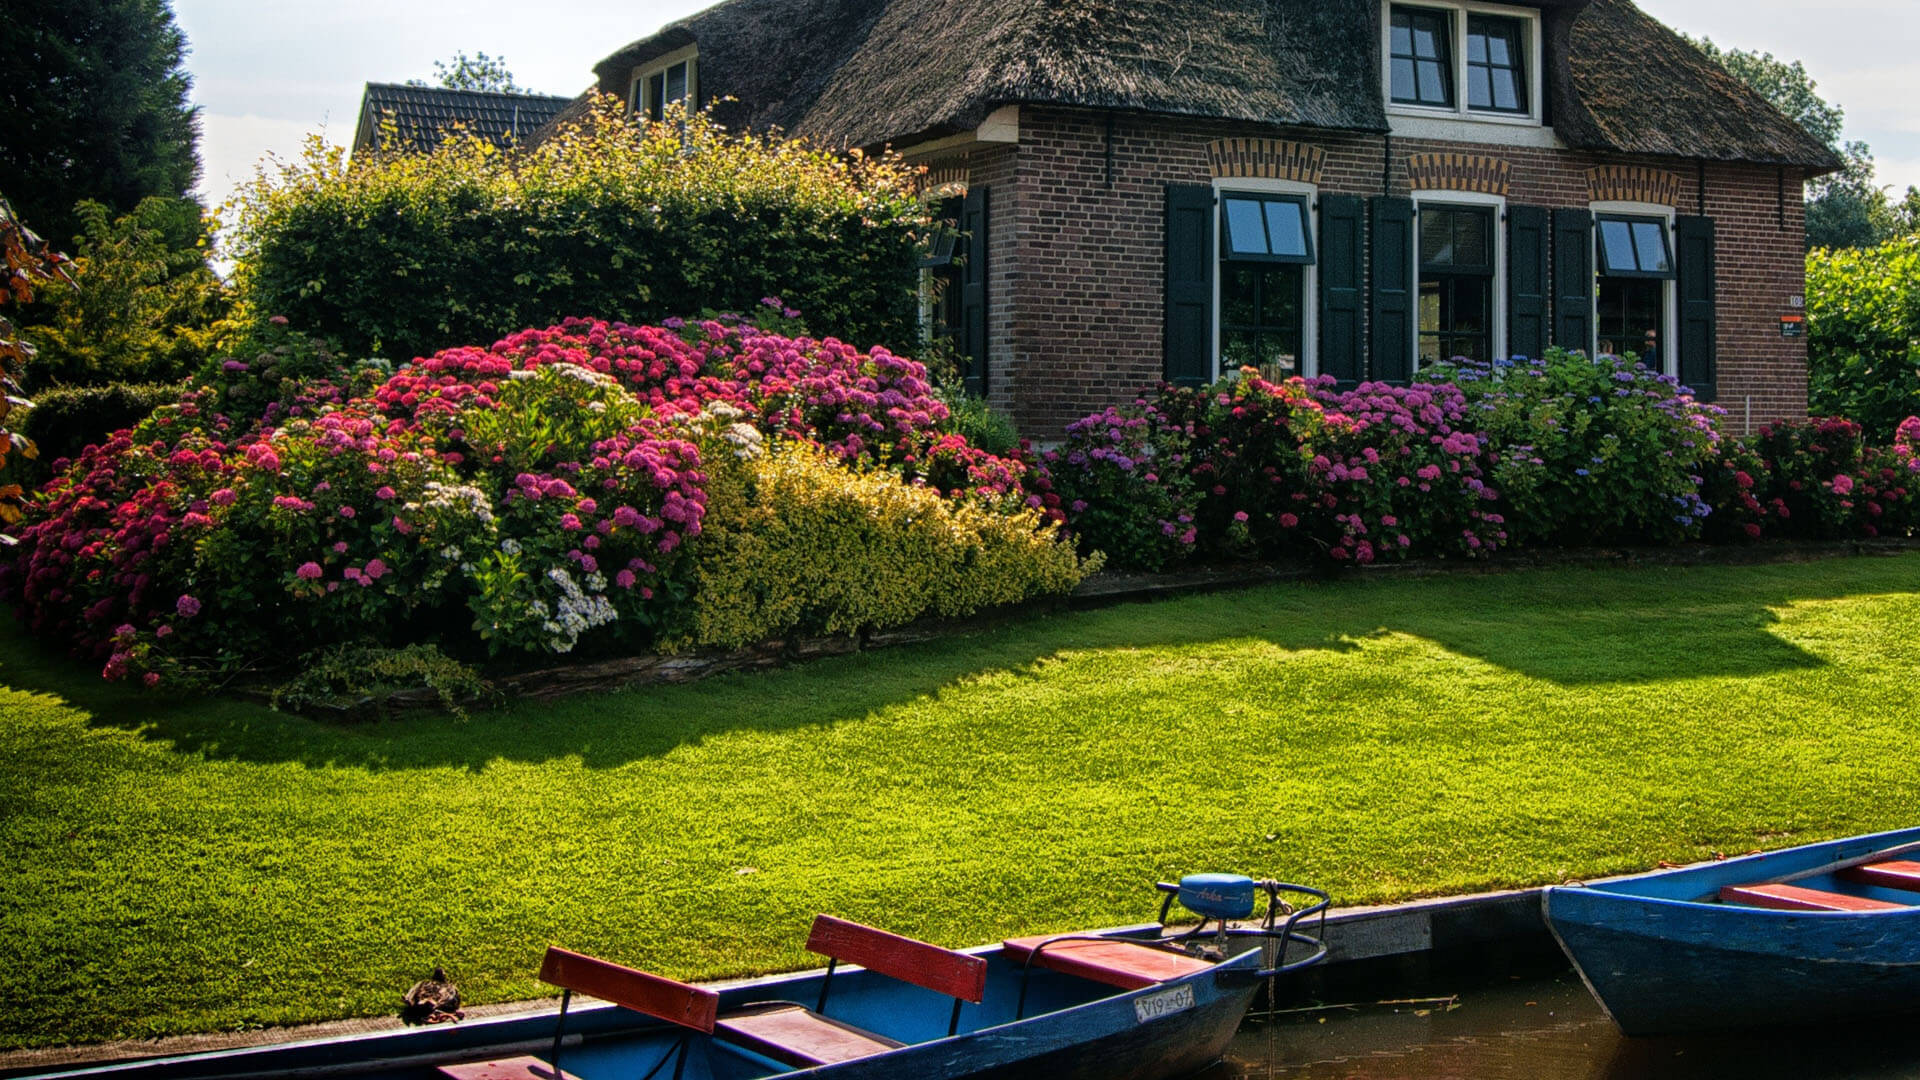 5 Reasons For Lawn Care| Blog | Lawn & Pest Control Xperts